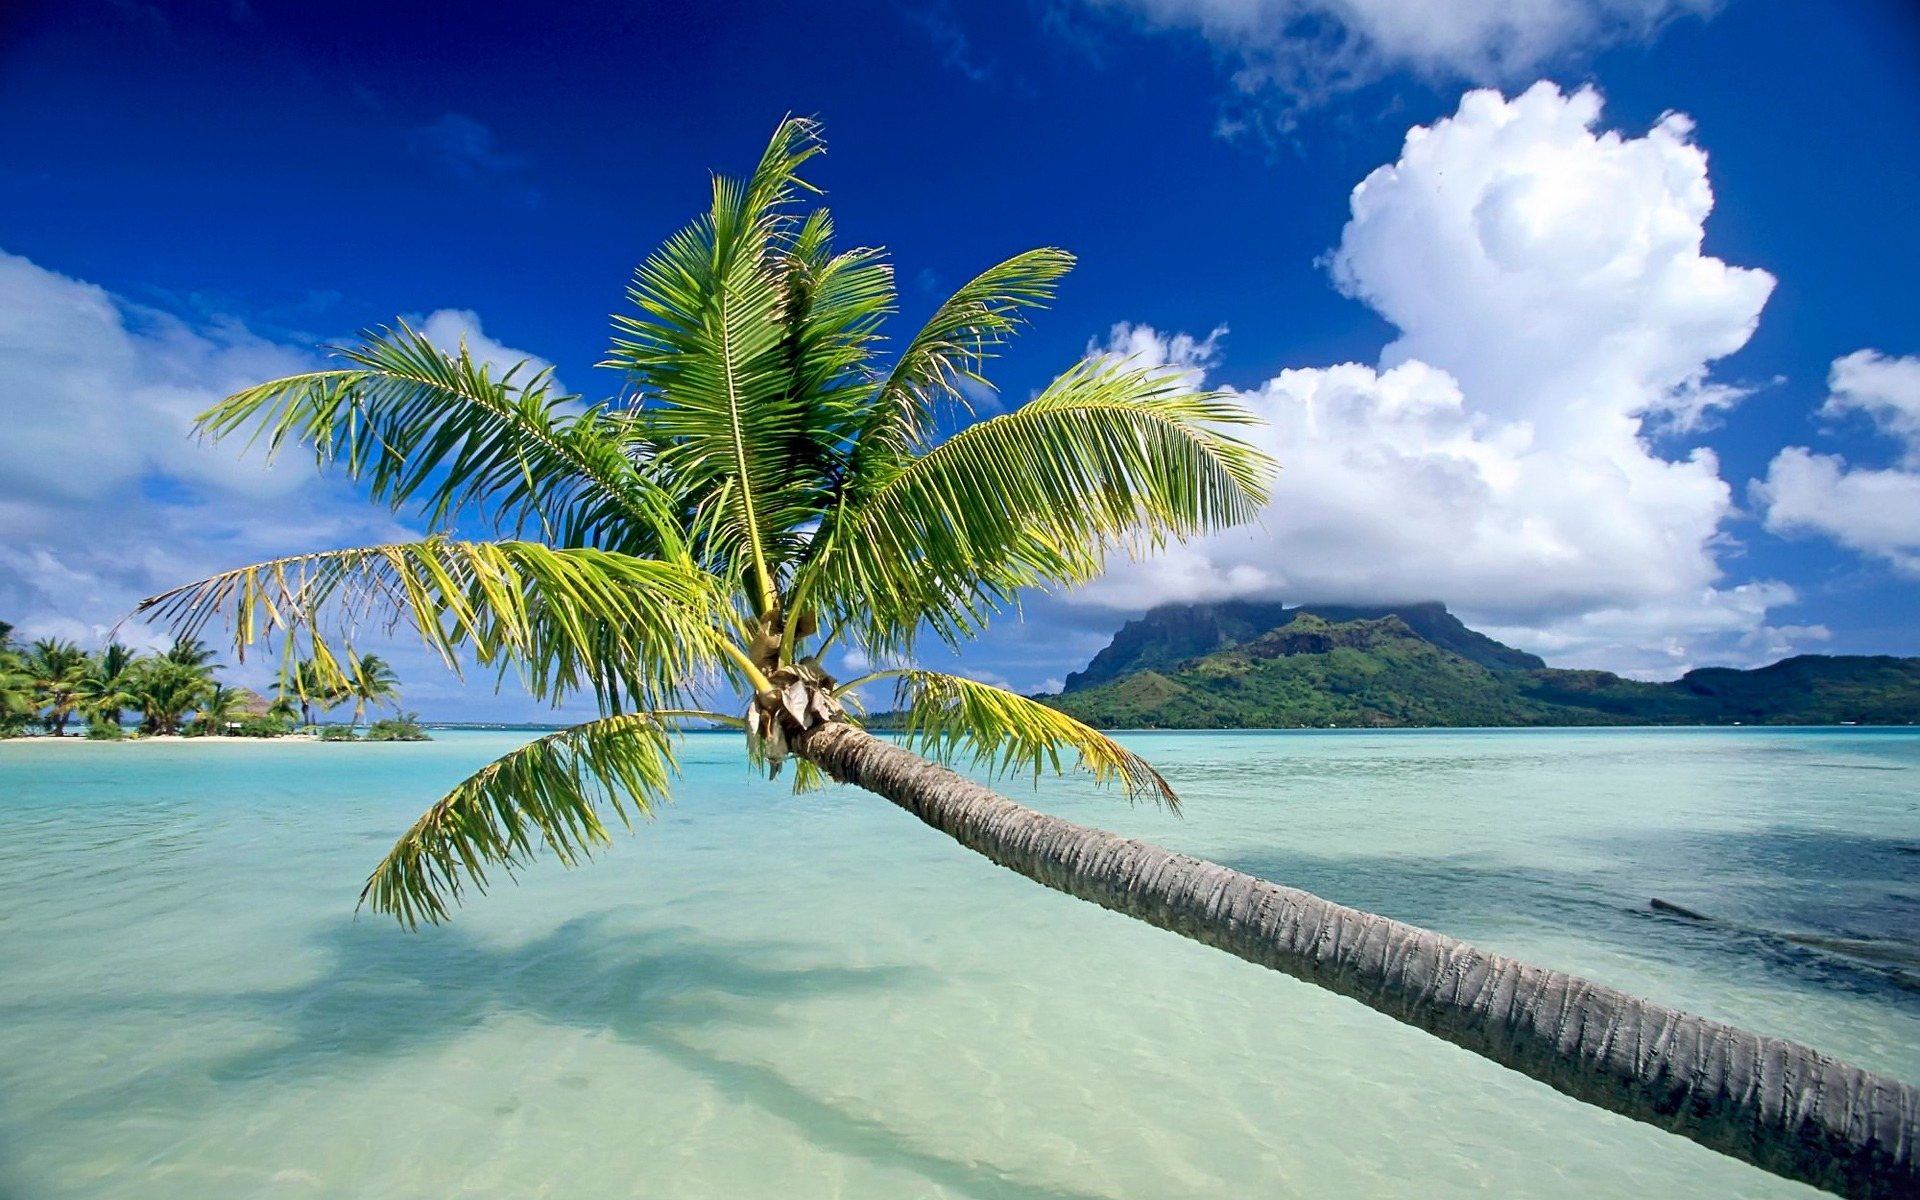 Hd wallpaper beach - Tropical Beach Background 16